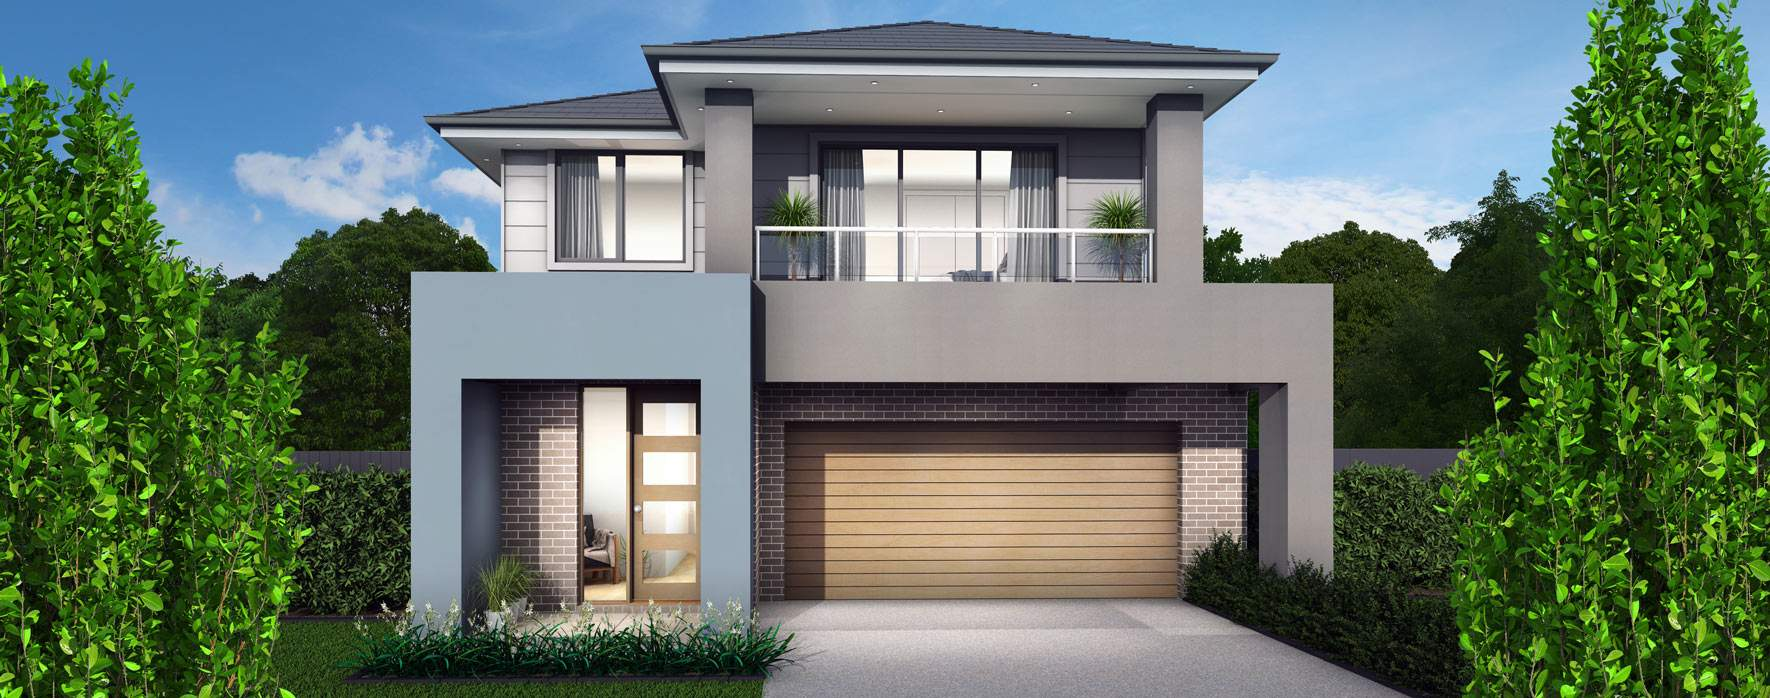 Applause Narrow Block House Design With 4 Bedrooms Mojo Homes